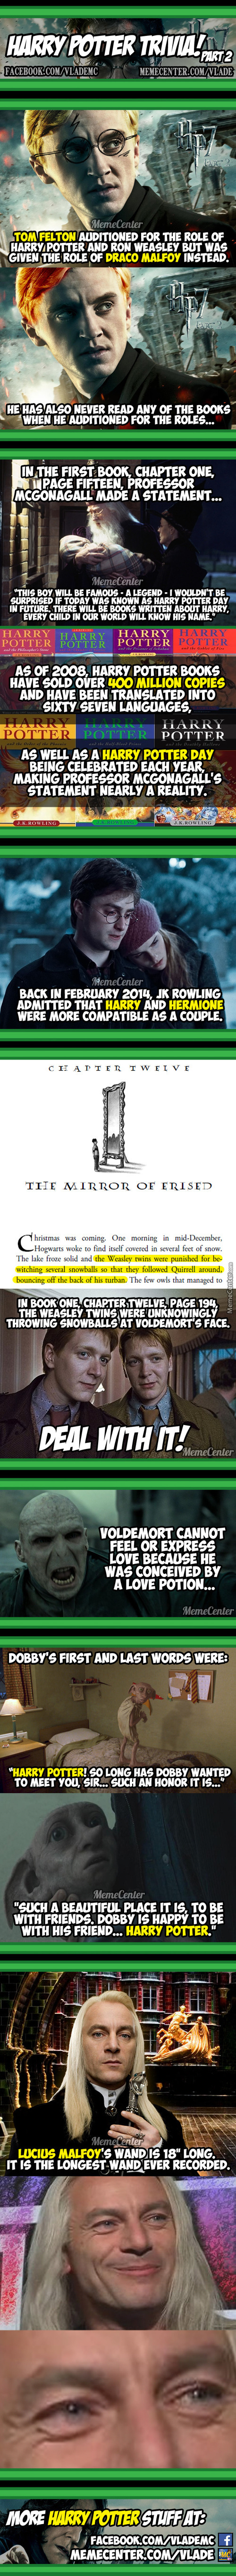 Harry Potter Fun Facts #2